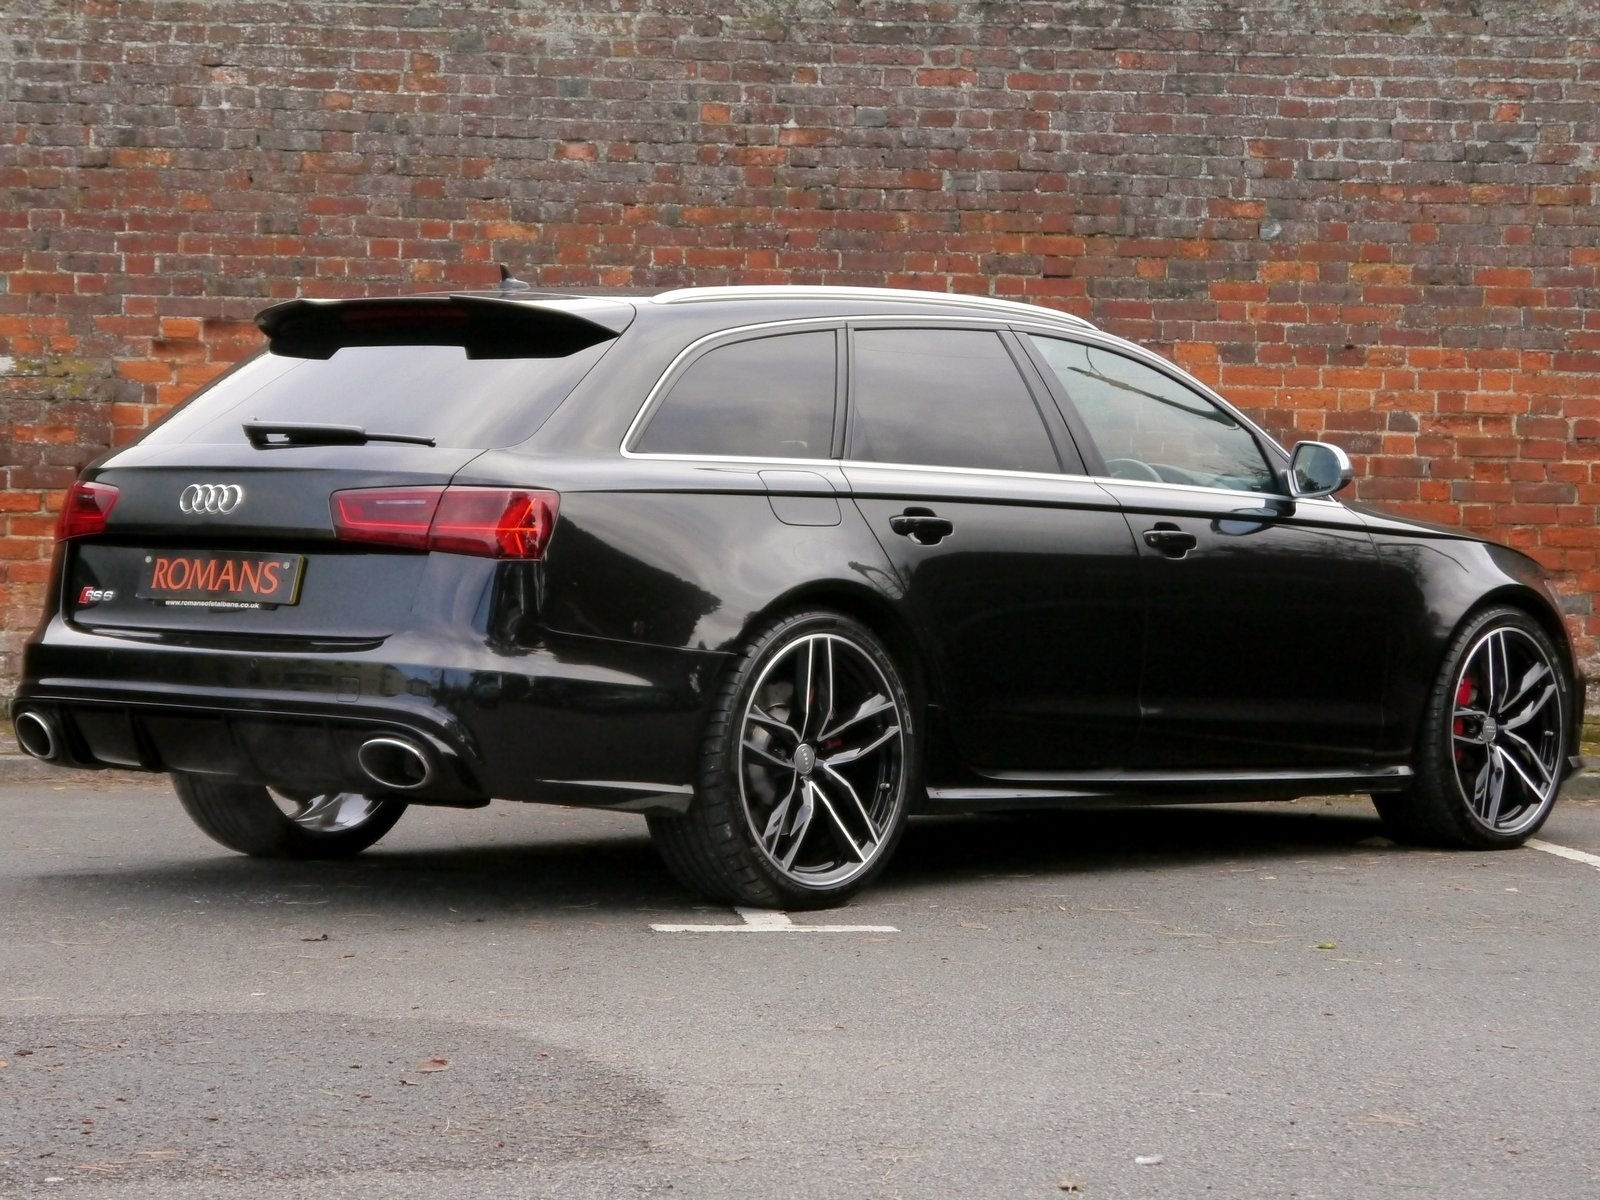 audi rs6 avant 4 0t fsi quattro tiptronic bose hud 21in alloys for sale. Black Bedroom Furniture Sets. Home Design Ideas